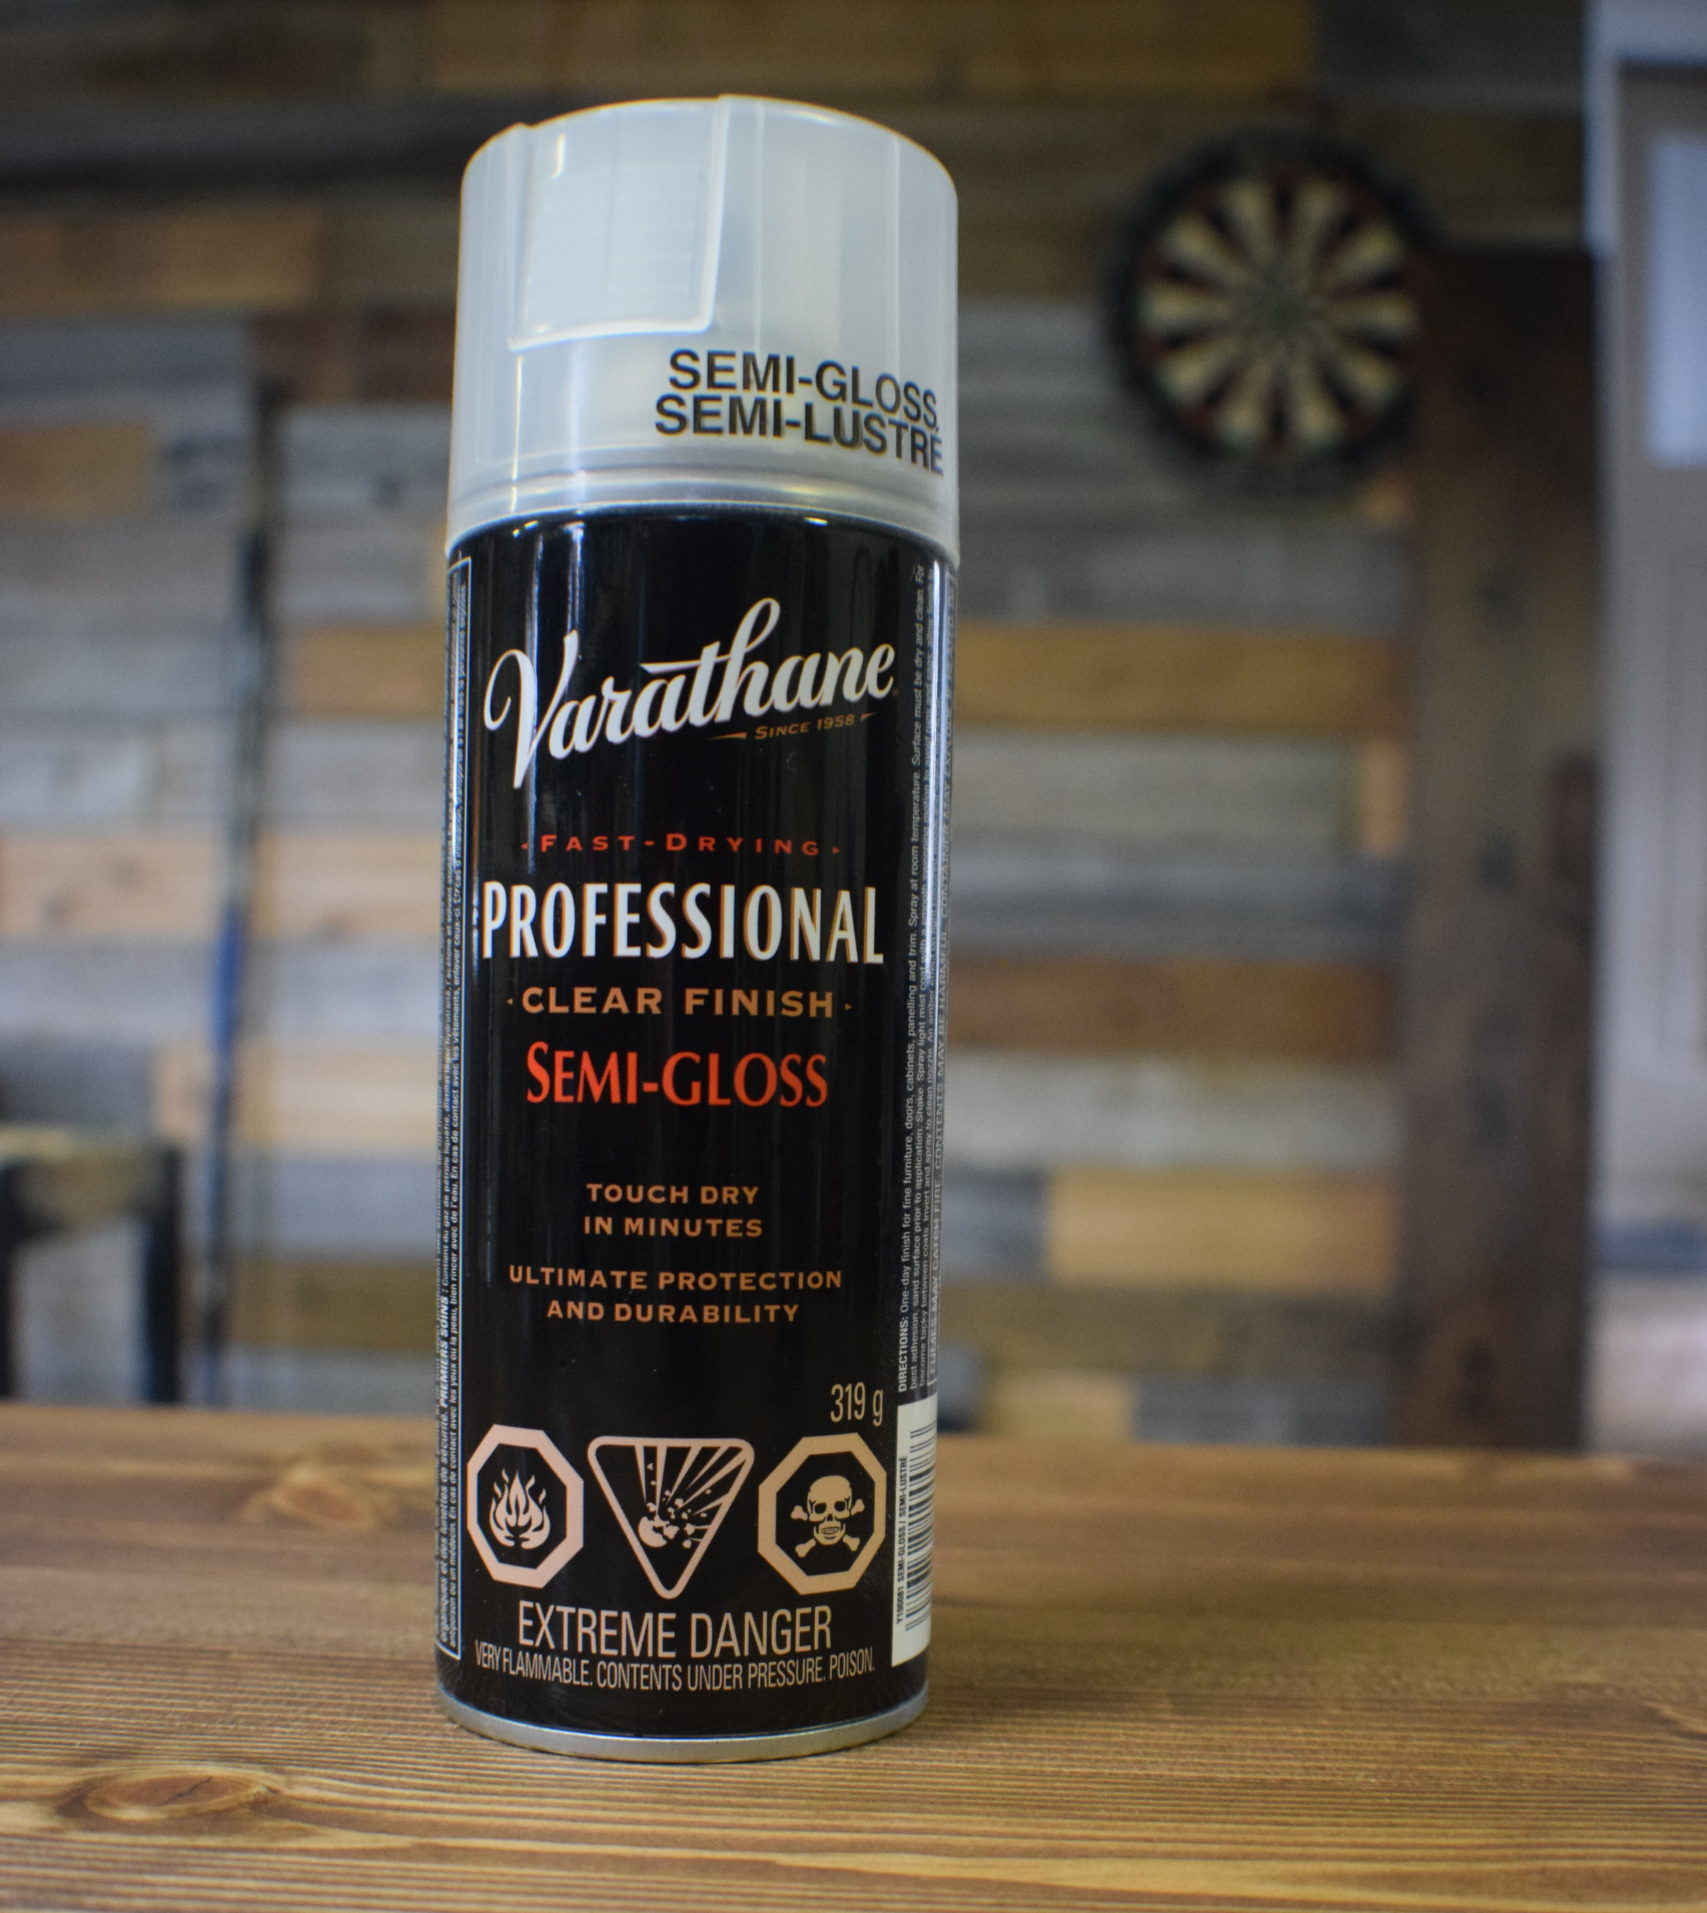 Spray can of varathane professional clear finish semi gloss with white and red text on wood background